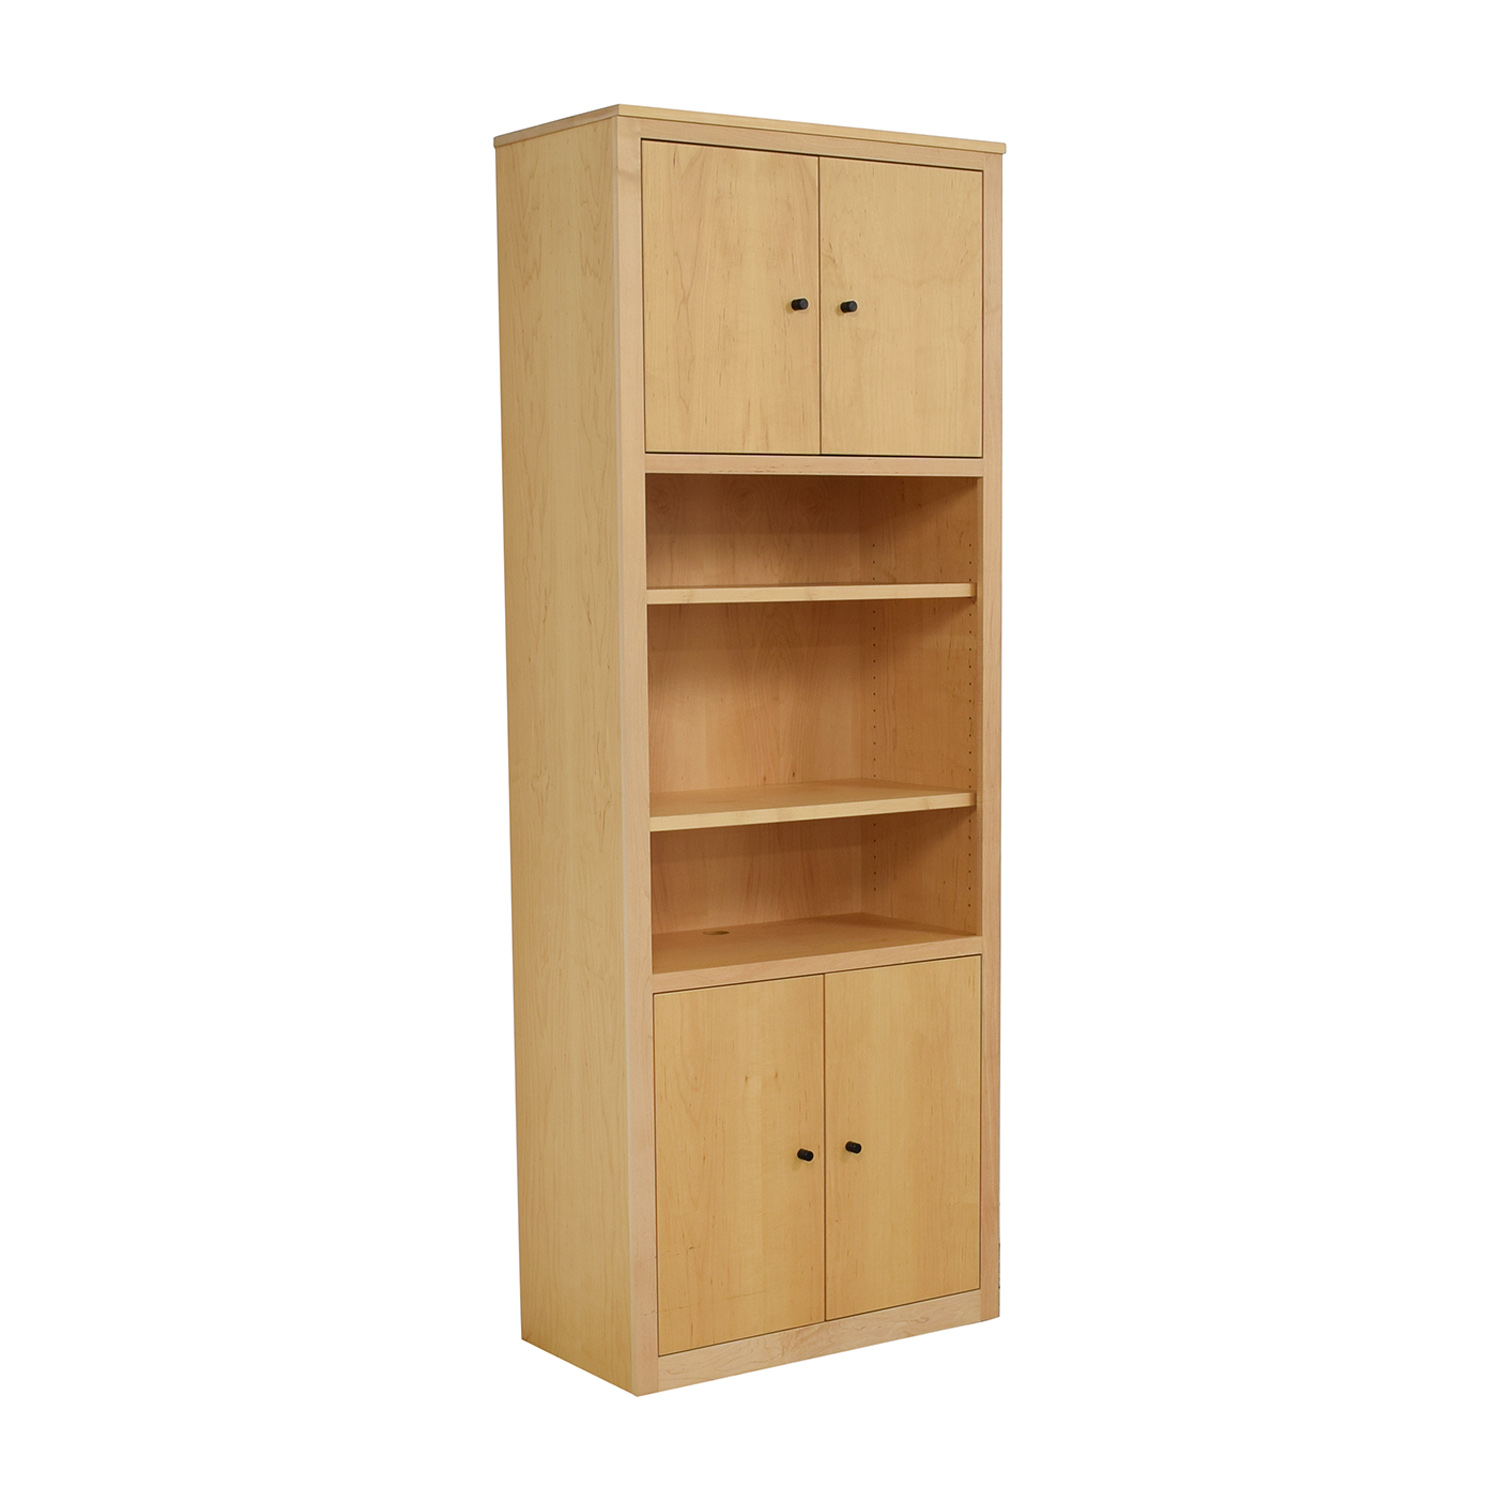 Room & Board Room & Board Woodwind Bookcase with Doors light brown